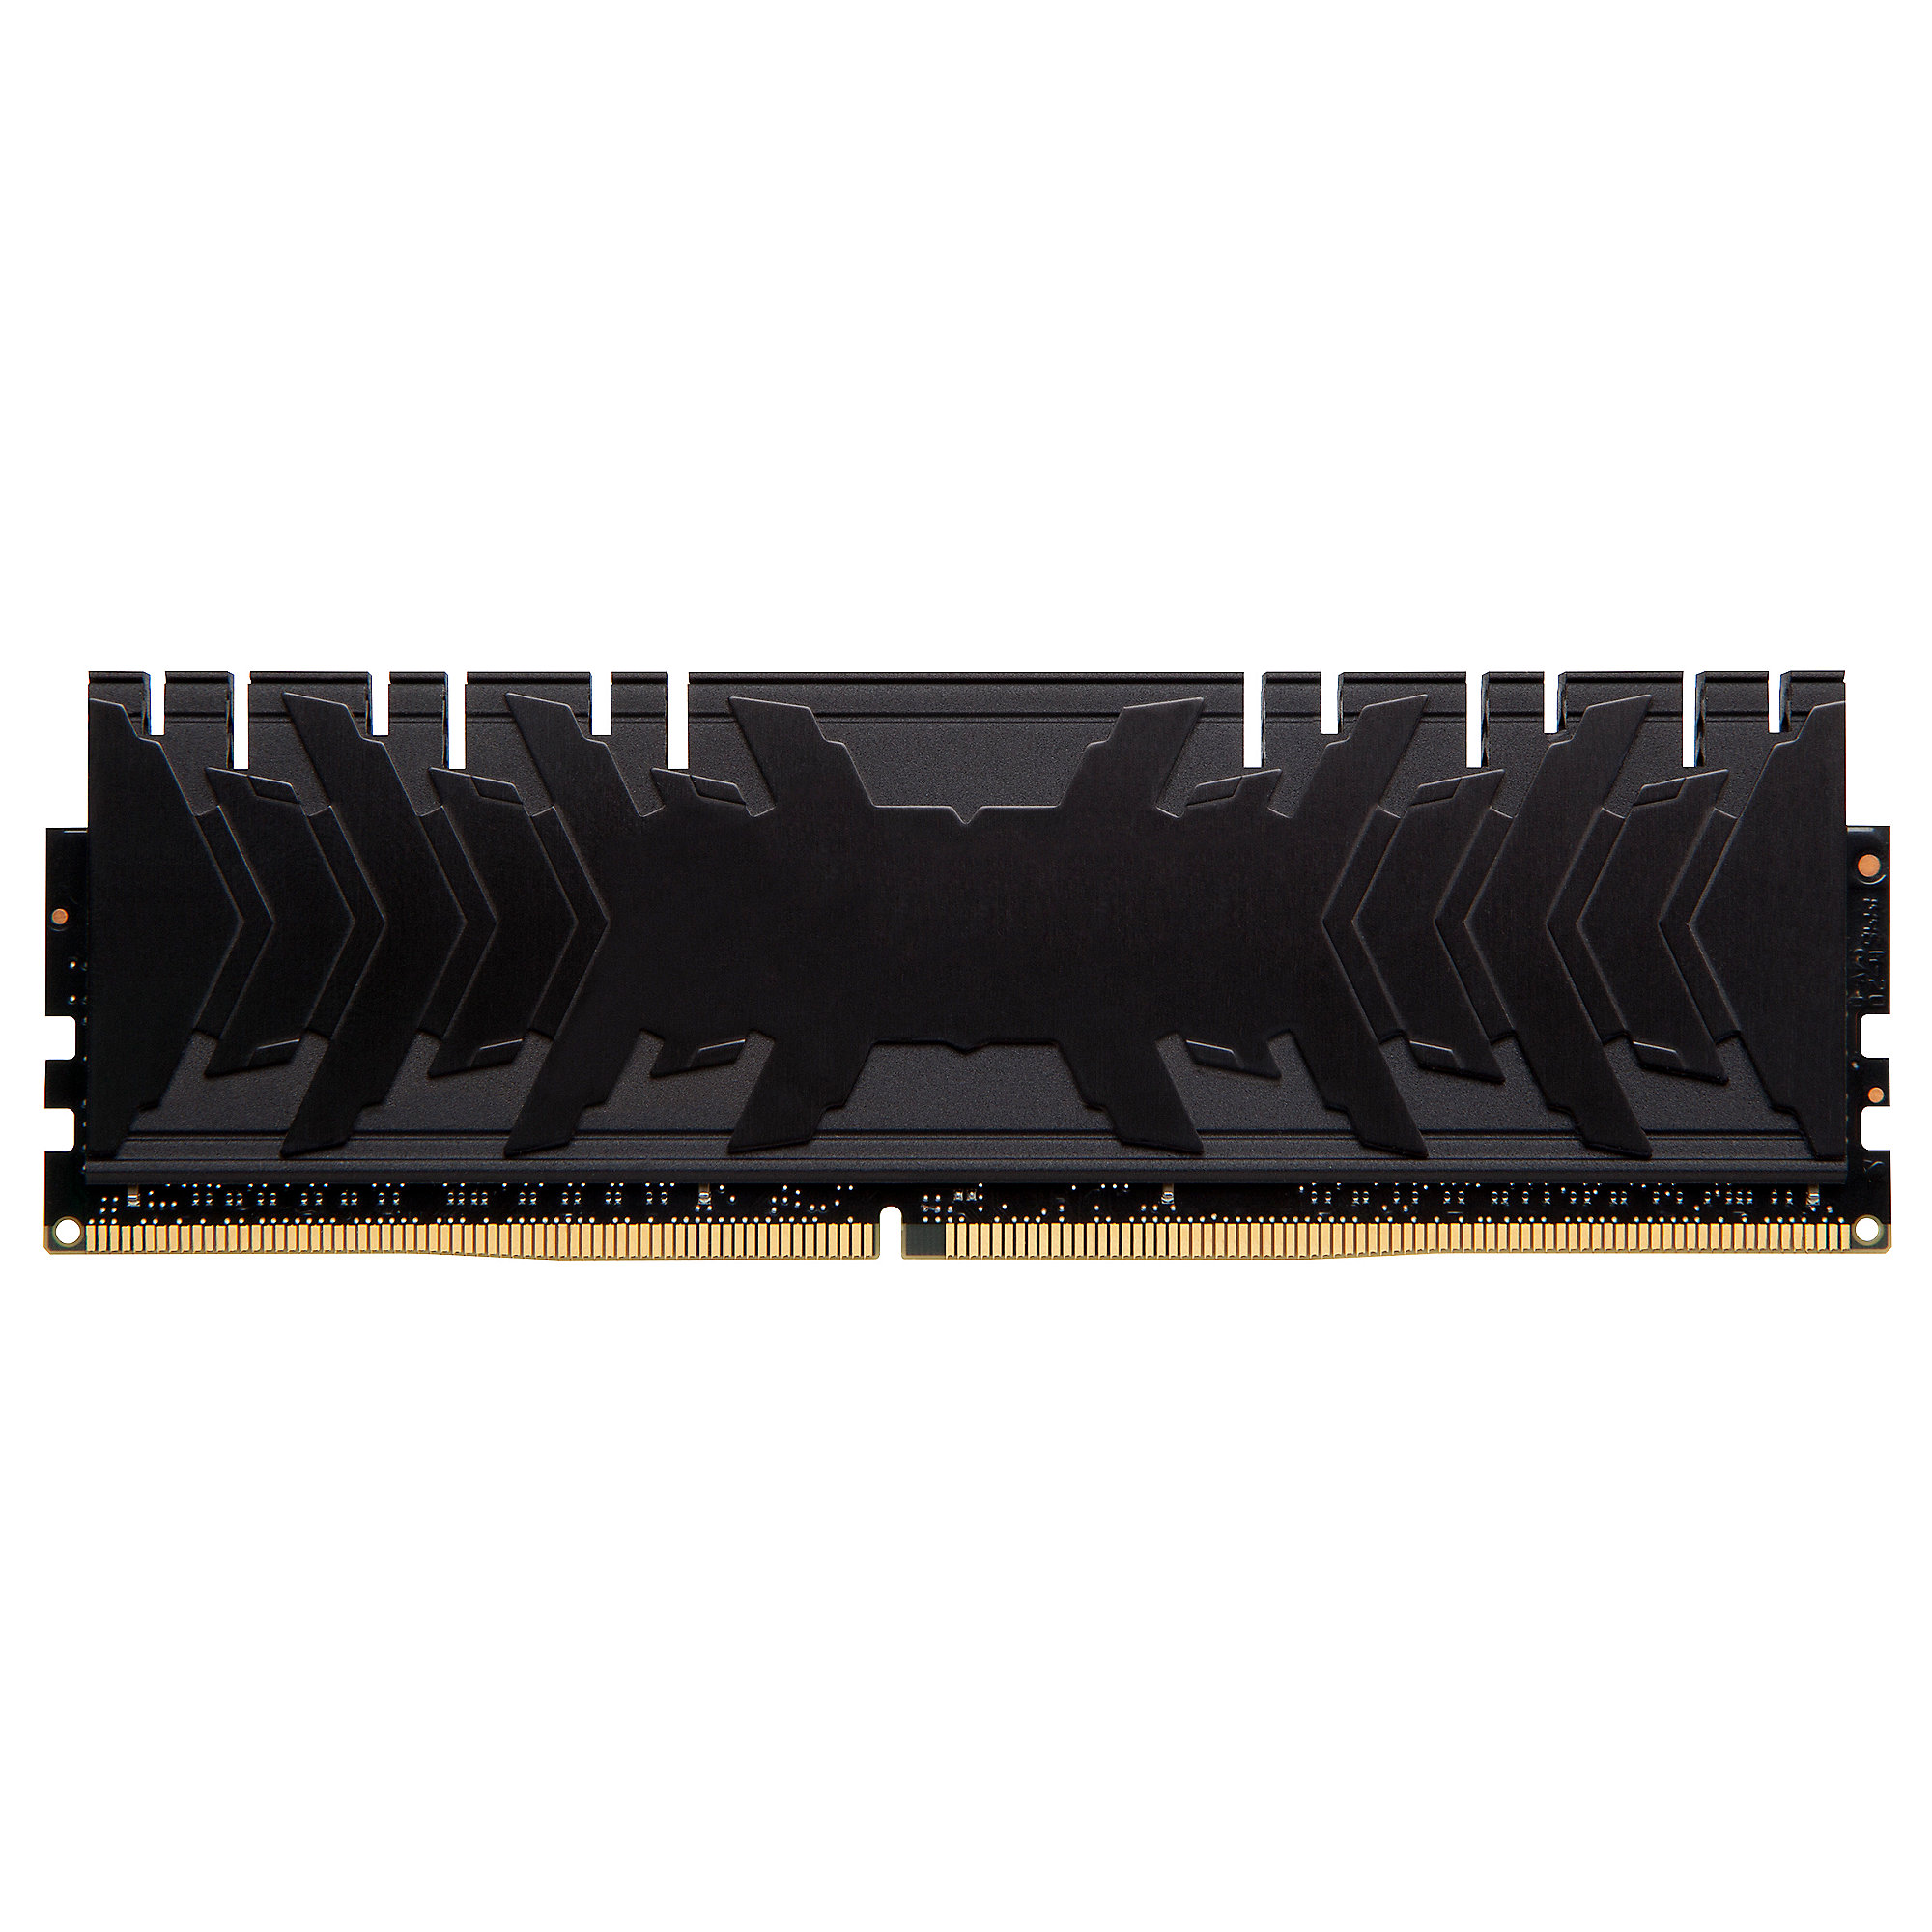 32GB (4x8GB) HyperX Predator DDR4-3333 CL16 RAM Kit